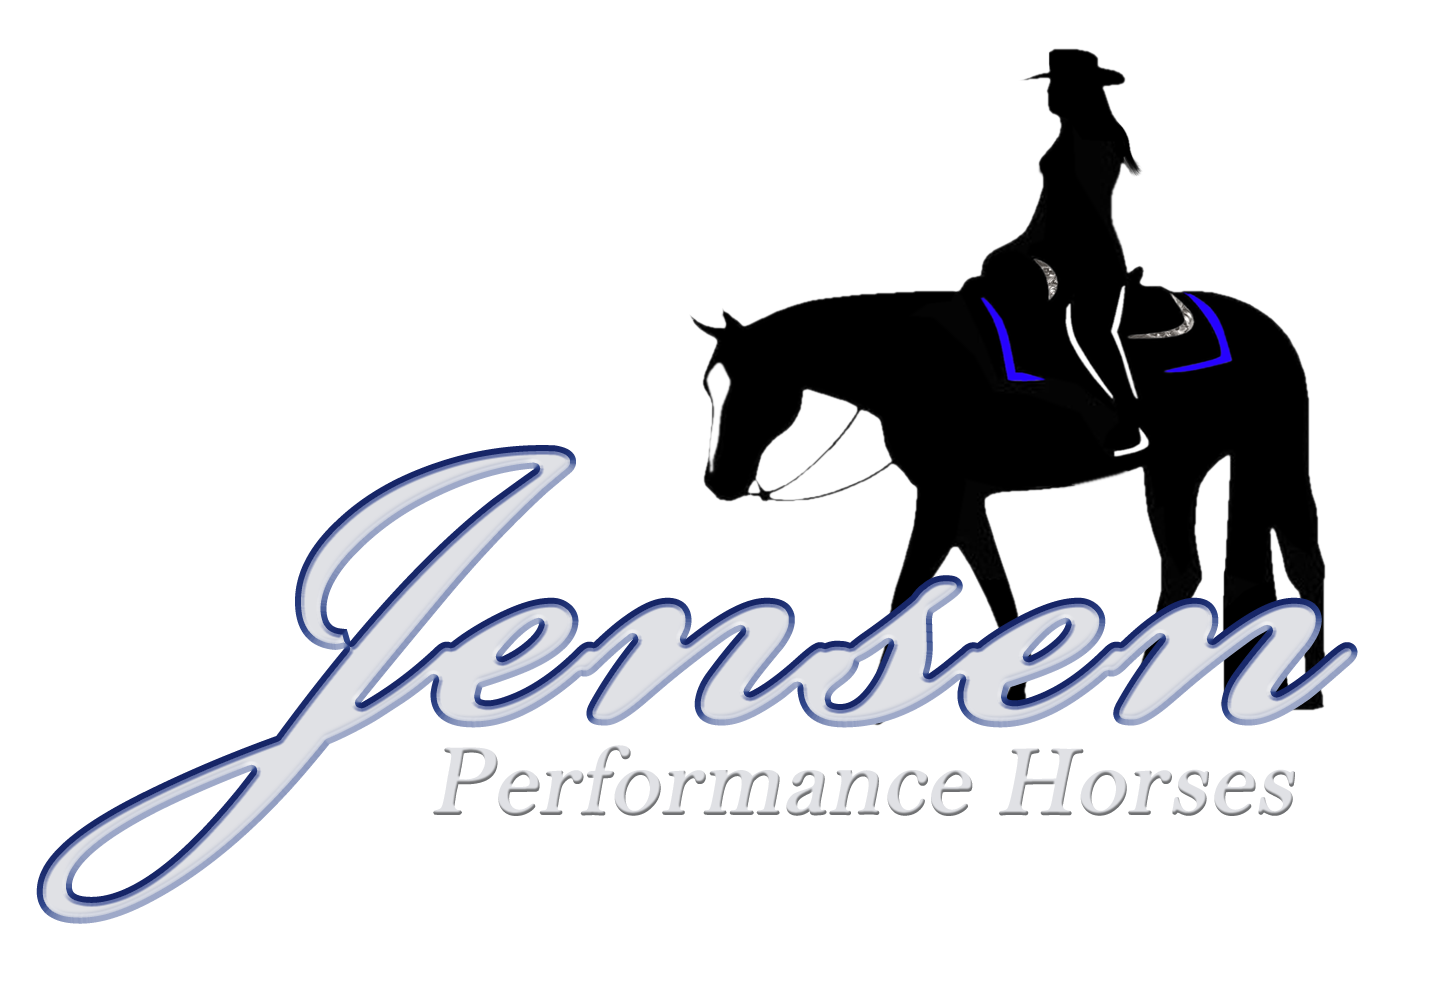 Jensen Performance Horses